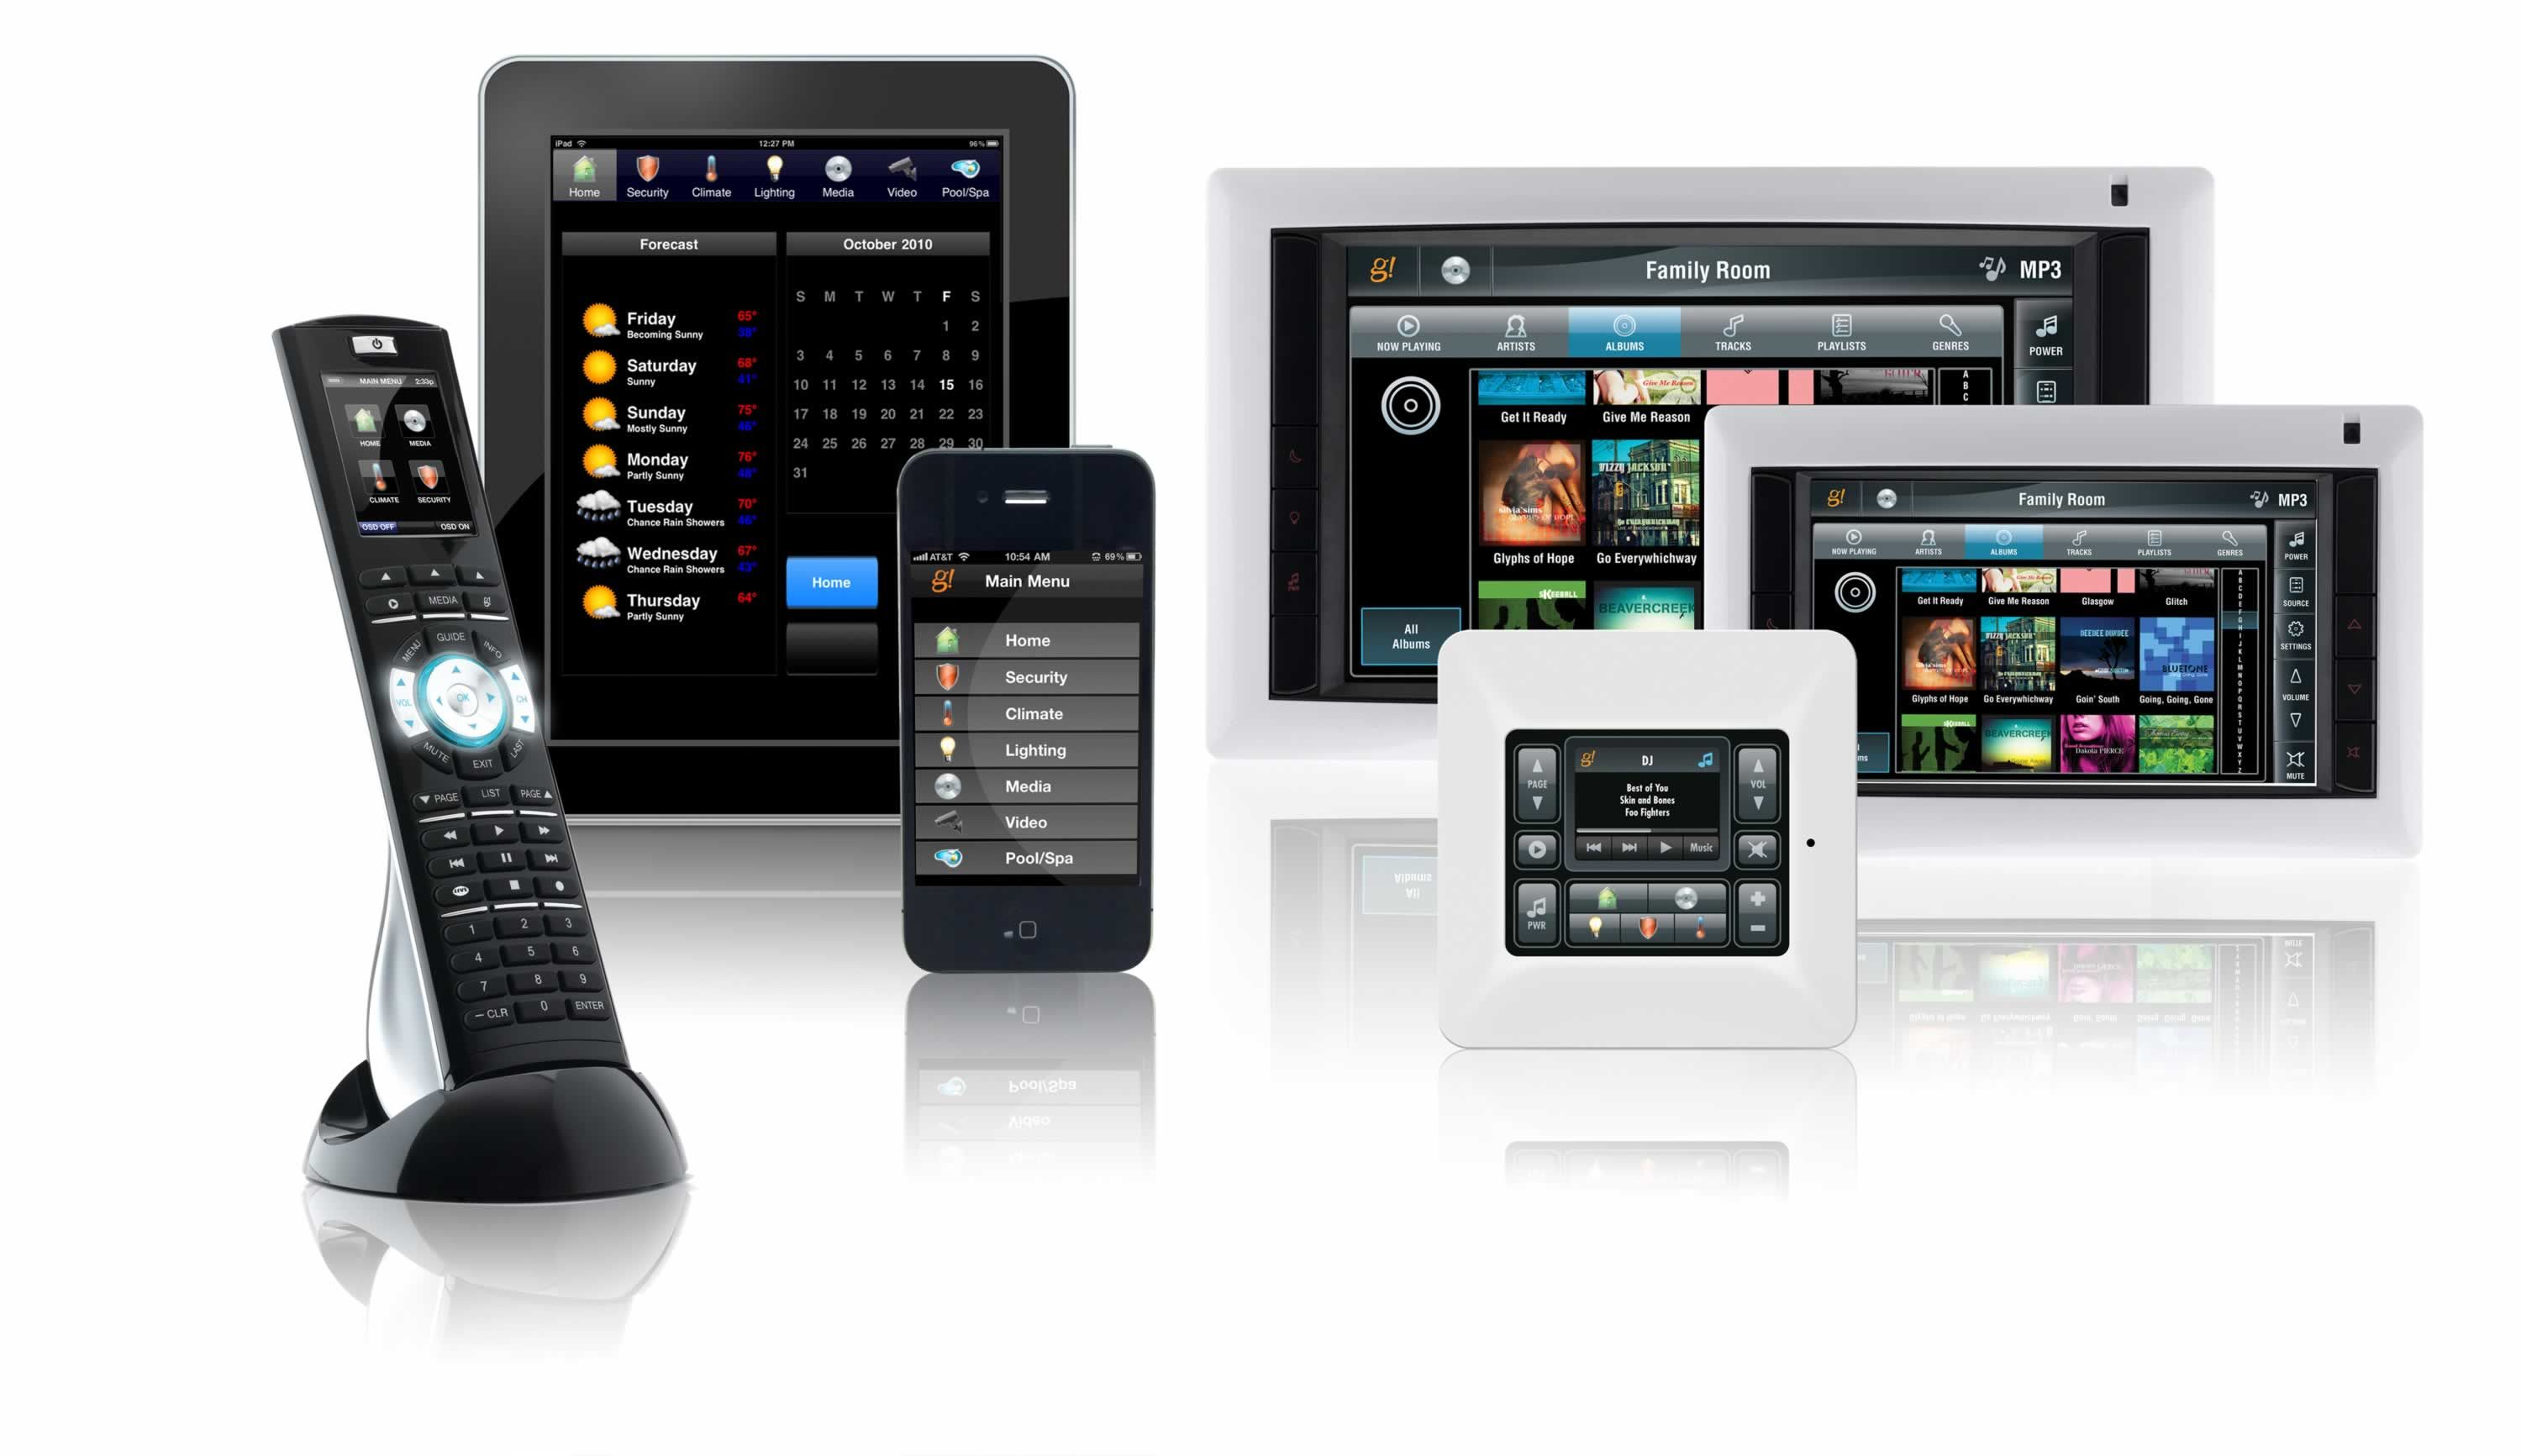 Elan Home Automation Devices Home Automation System Home Security Alarm System Home Automation Software